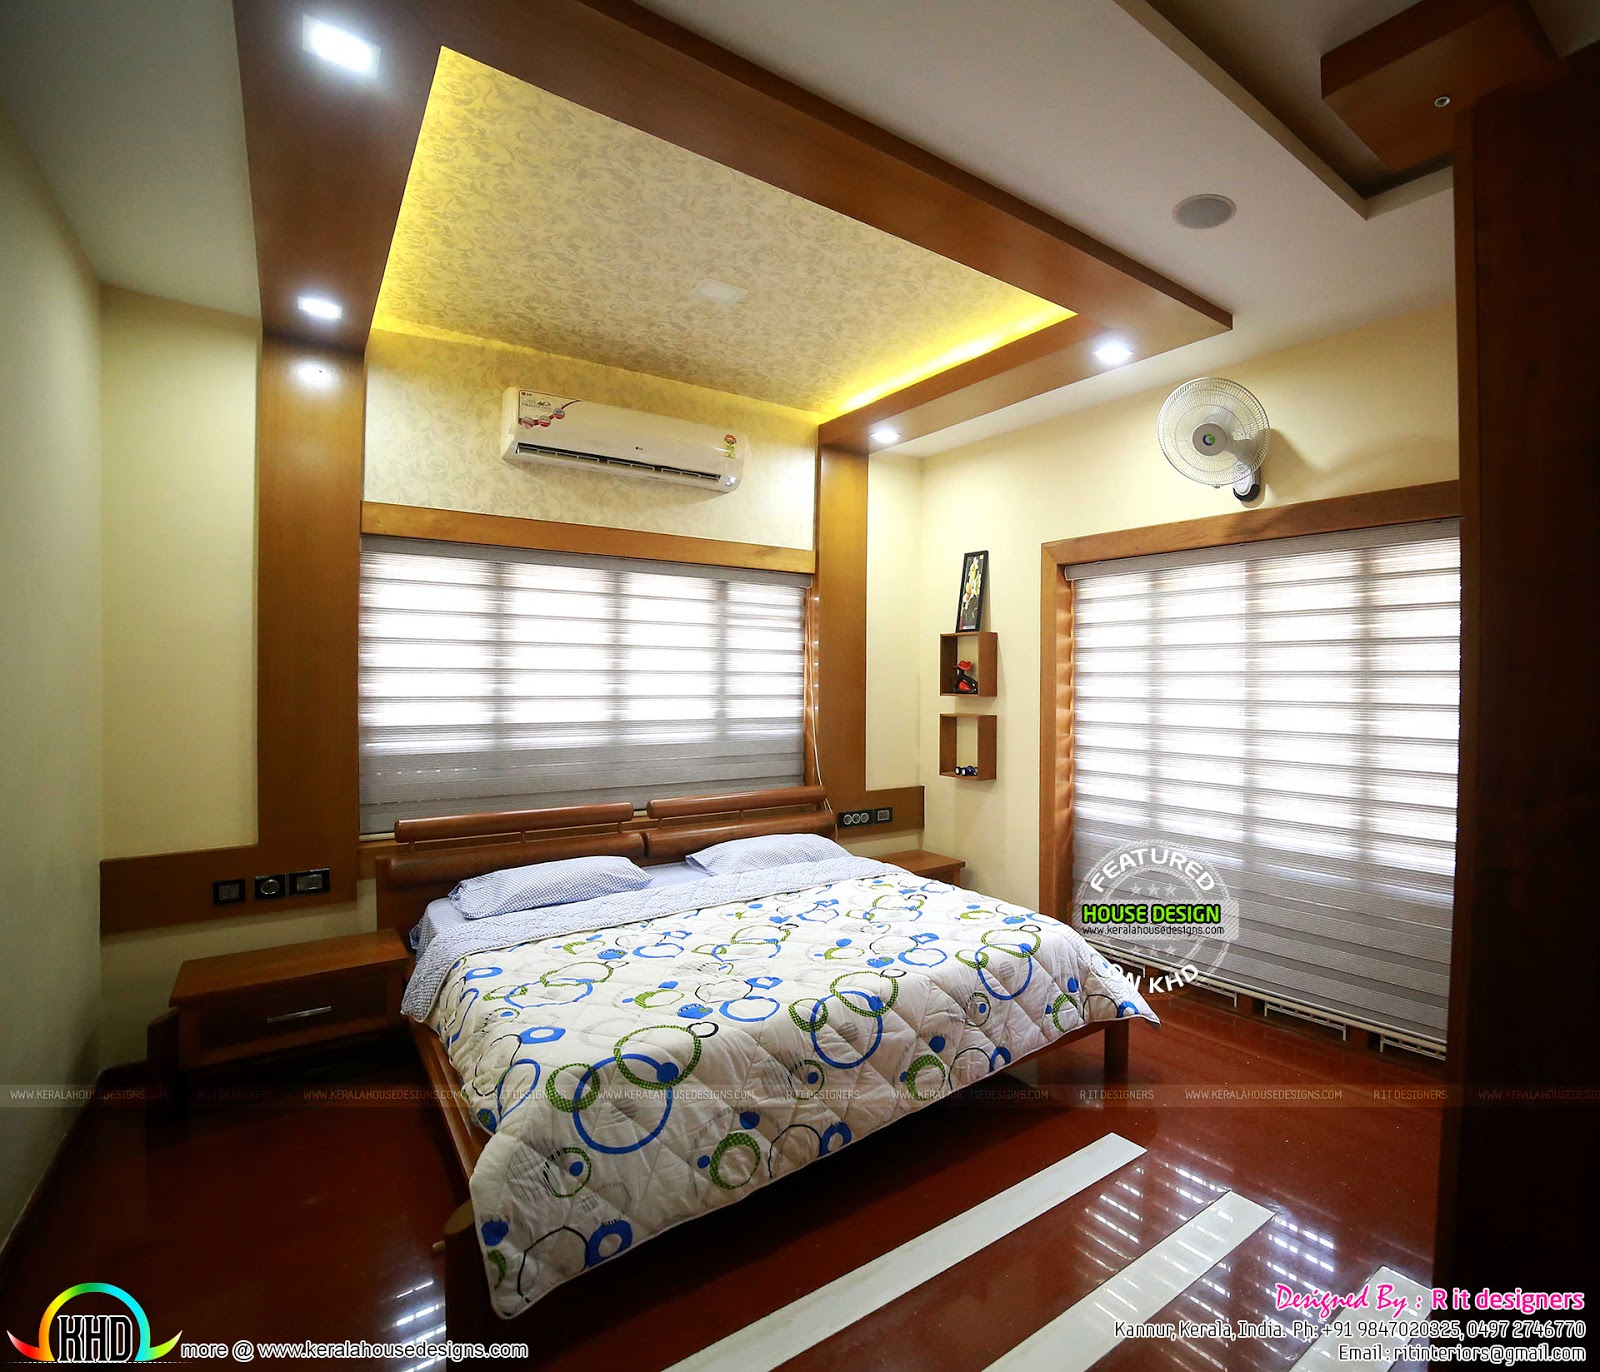 Kerala Bedroom Interior Design Colour For Bedroom Two Bed Bedroom Bedroom Wallpaper Colours: Finished Home, Floor Plan And Interiors